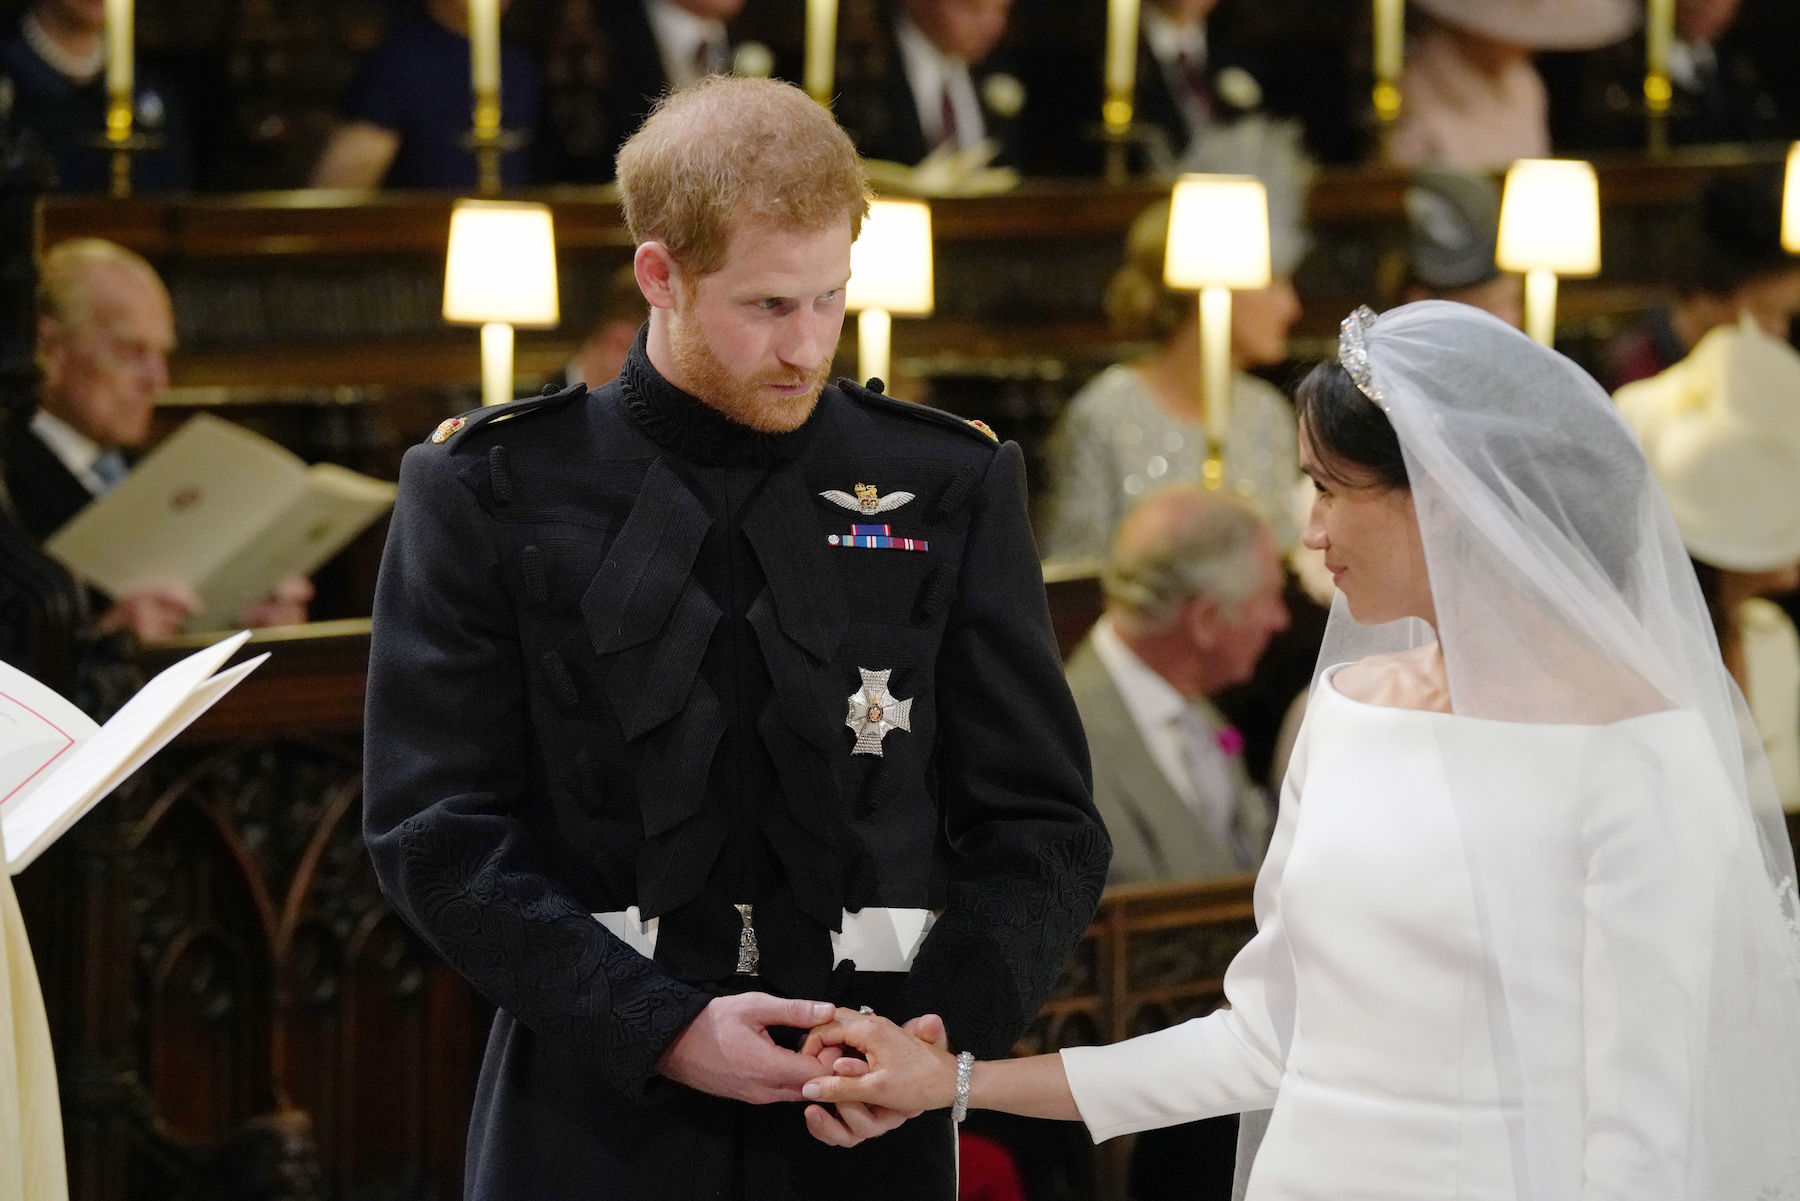 "<div class=""meta image-caption""><div class=""origin-logo origin-image kgo""><span>kgo</span></div><span class=""caption-text"">Britain's Prince Harry and Meghan Markle stand together hand in hand at the High Altar during their wedding ceremony in St George's Chapel. (Jonathan Brady/AFP/Getty Images)</span></div>"